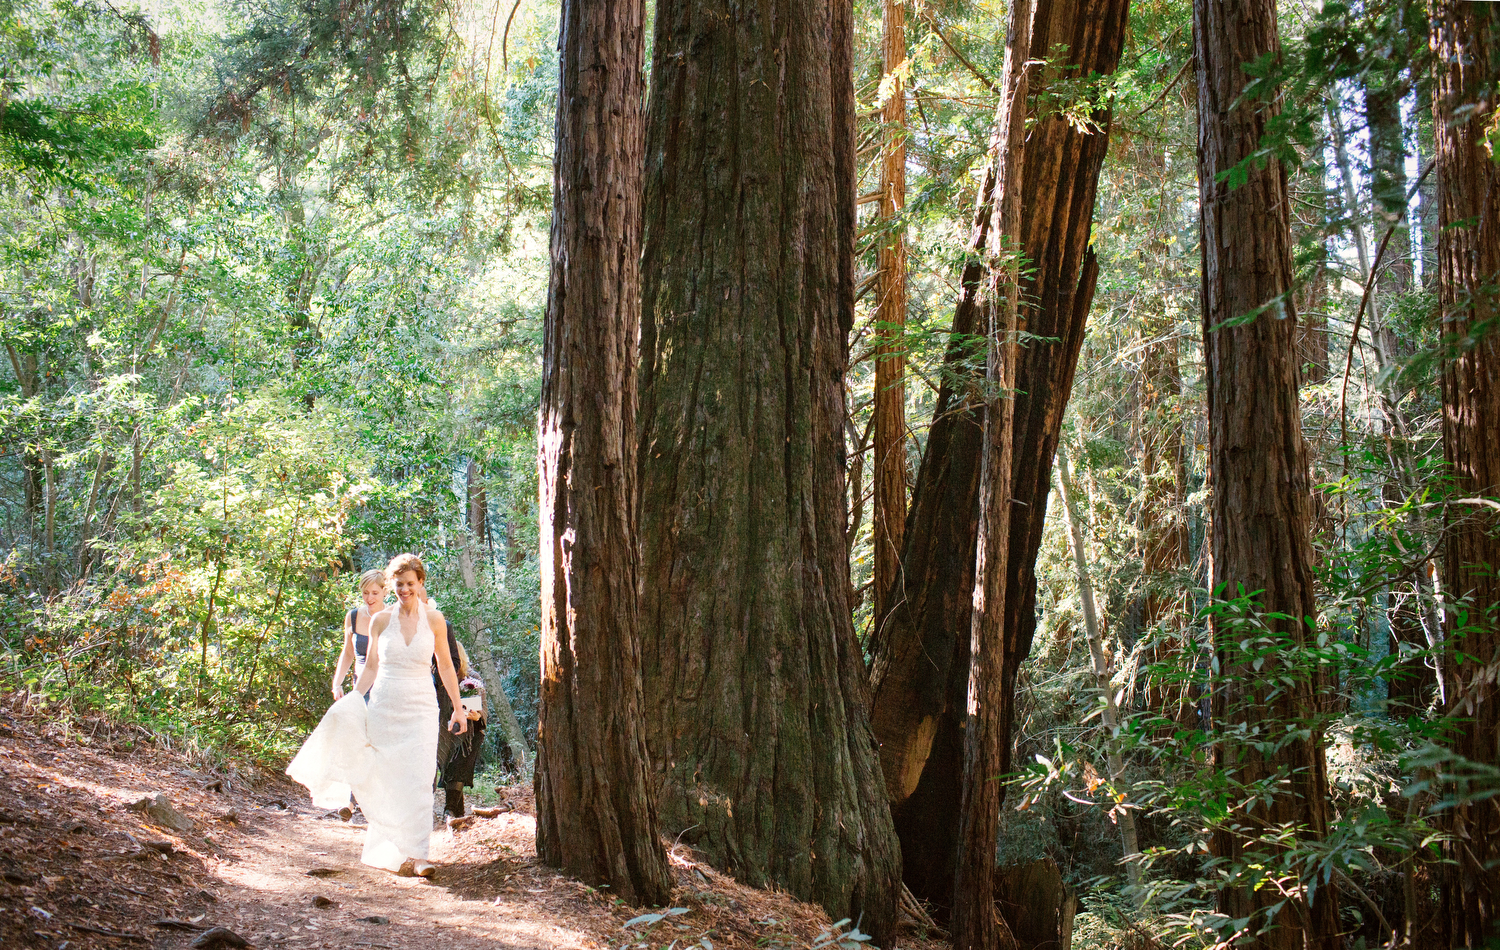 Sheridan and Lynda walking through the redwood forest to the ceremony site in their wedding dresses.